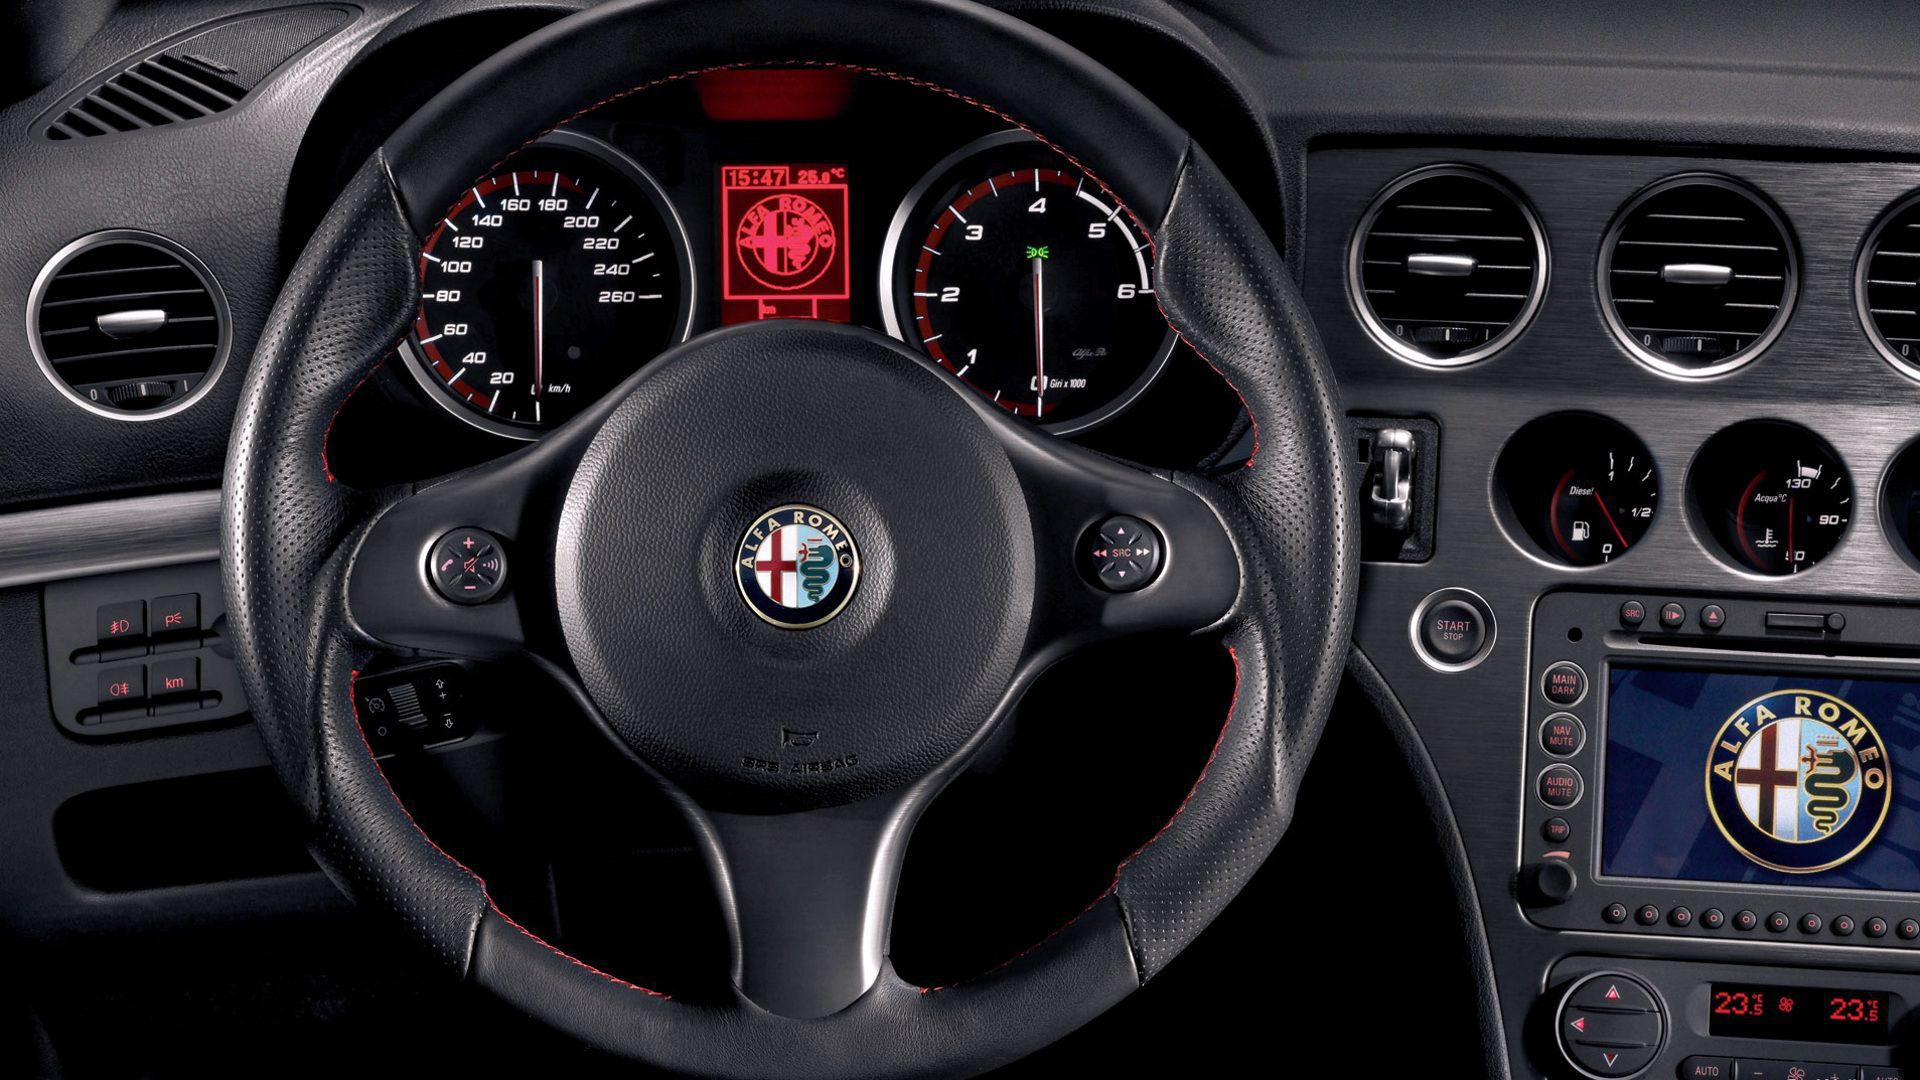 Alfa Romeo 159 Wallpaper Pack